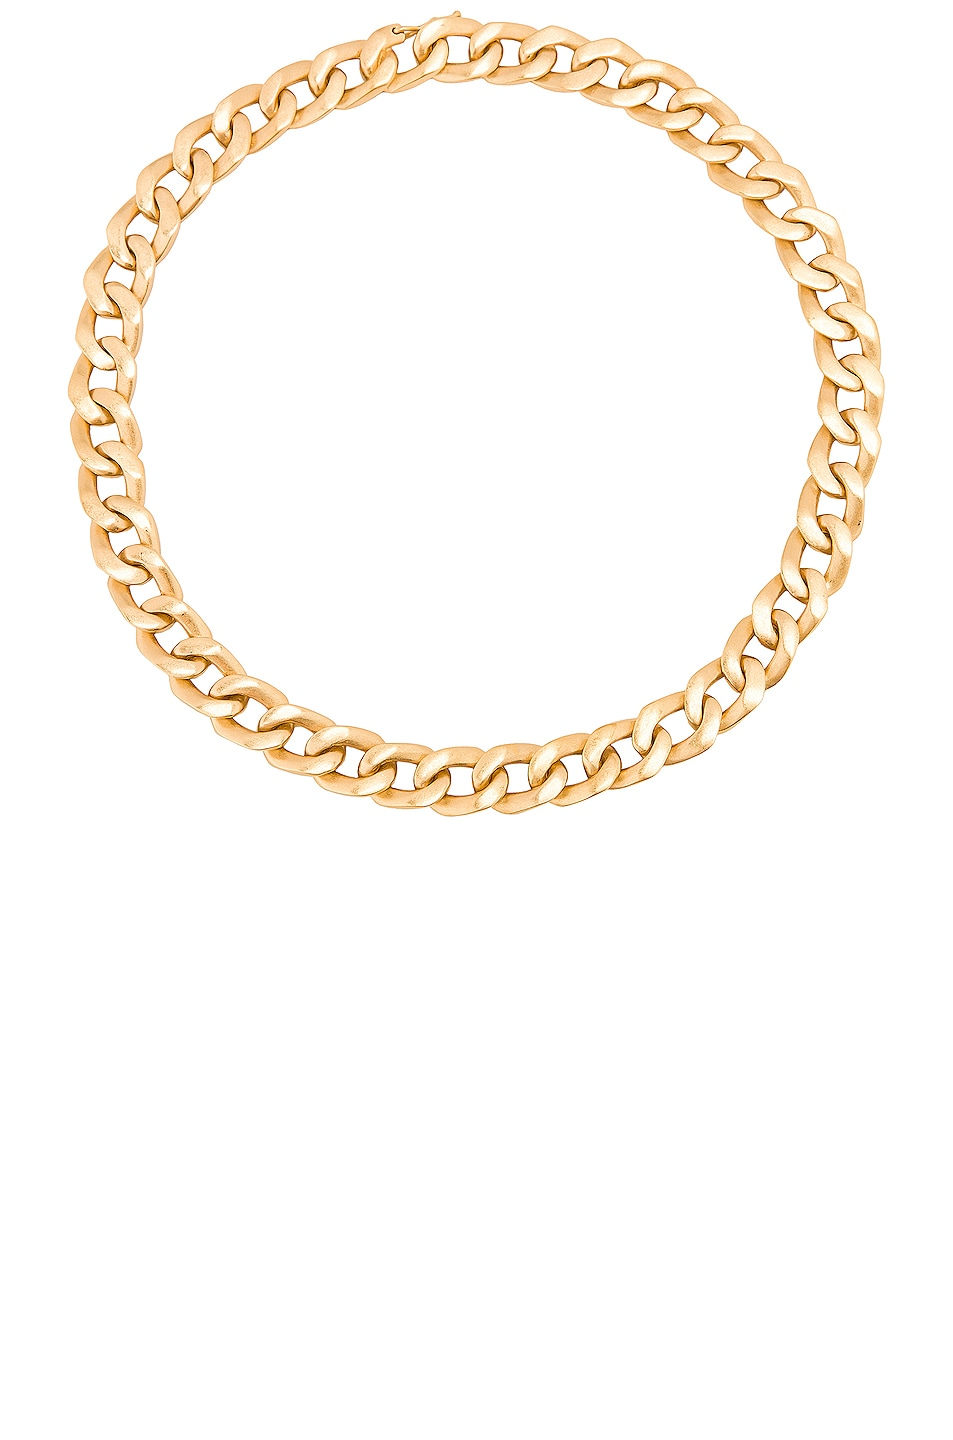 Image 1 of Maison Margiela Chain Necklace in Yellow Gold Plating